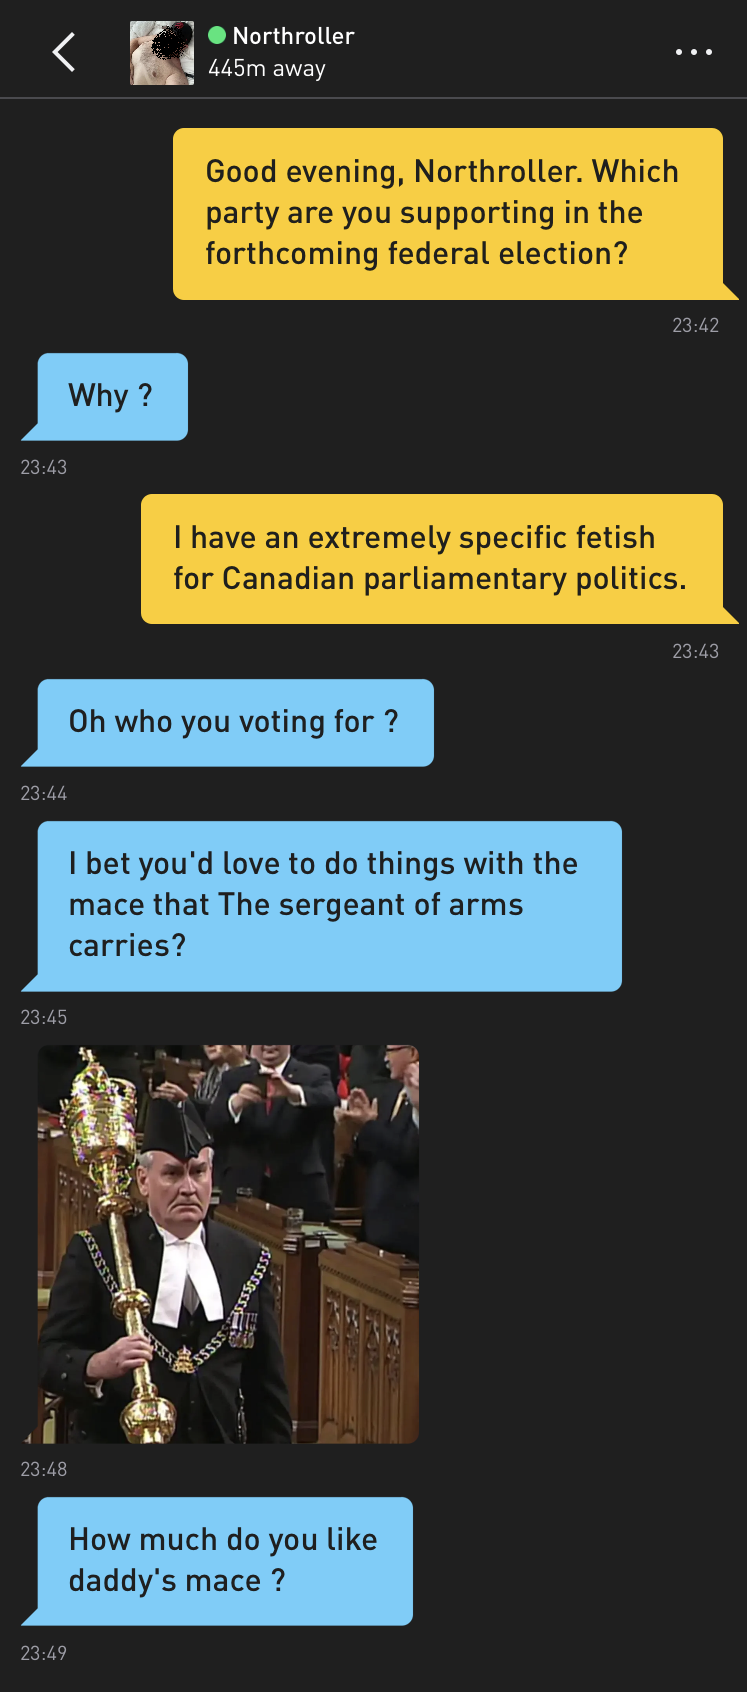 Me: Good evening, Northroller. Which party are you supporting in the forthcoming federal election? Northroller: Why ? Me: I have an extremely specific fetish for Canadian parliamentary politics. Northroller: Oh who you voting for ? Northroller: I bet you'd love to do things with the mace that The sergeant of arms carries? Northroller: [photo of the Sergeant-At-Arms carrying a ceremonial mace] Northroller: How much do you like daddy's mace ?